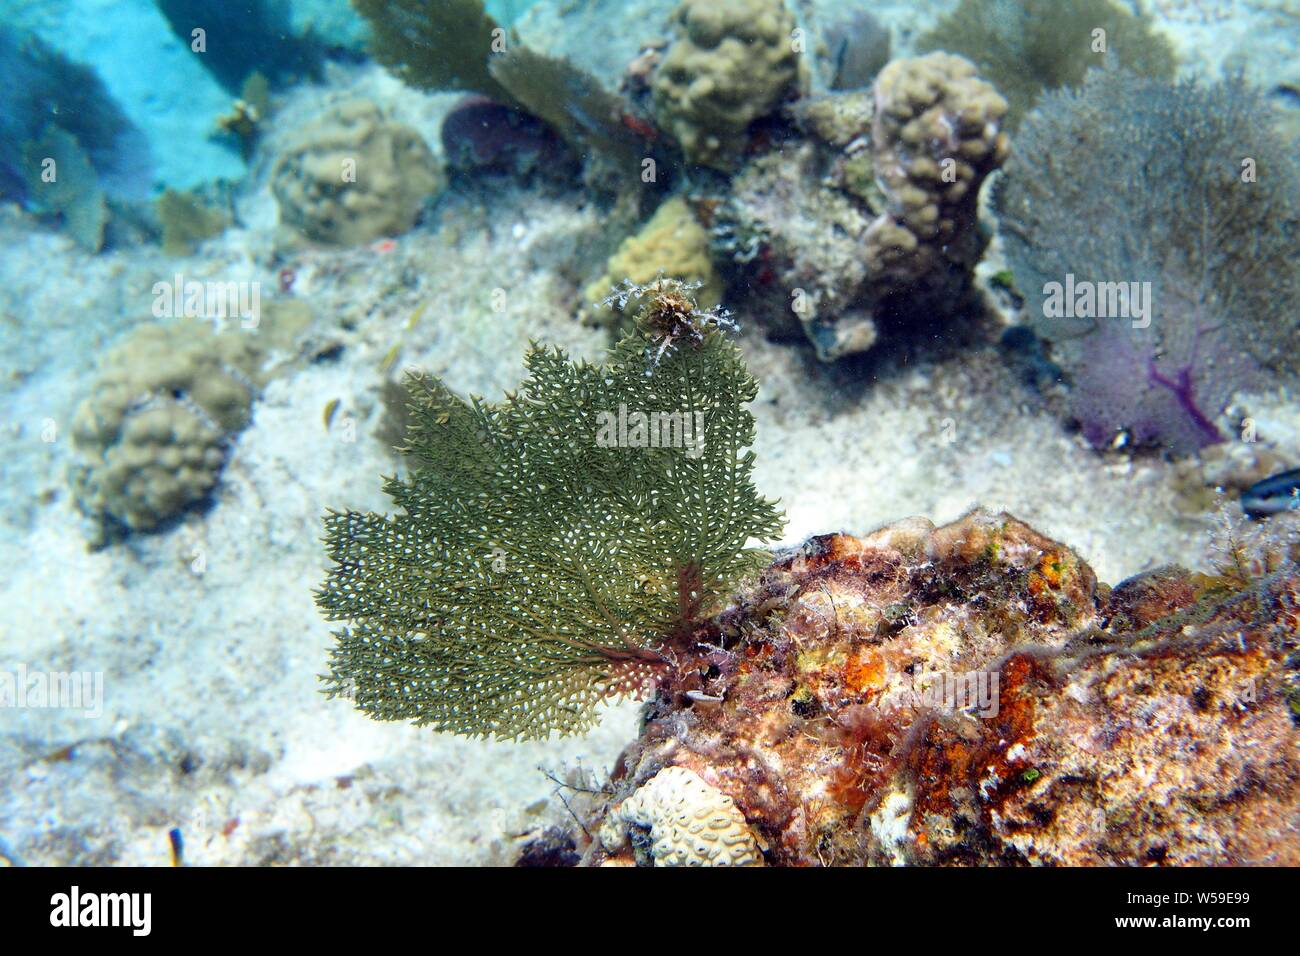 Excellent example of a green Common sea fan (Gorgonia flabellum) and other coral, Little Bay, Anguilla, BWI. Stock Photo